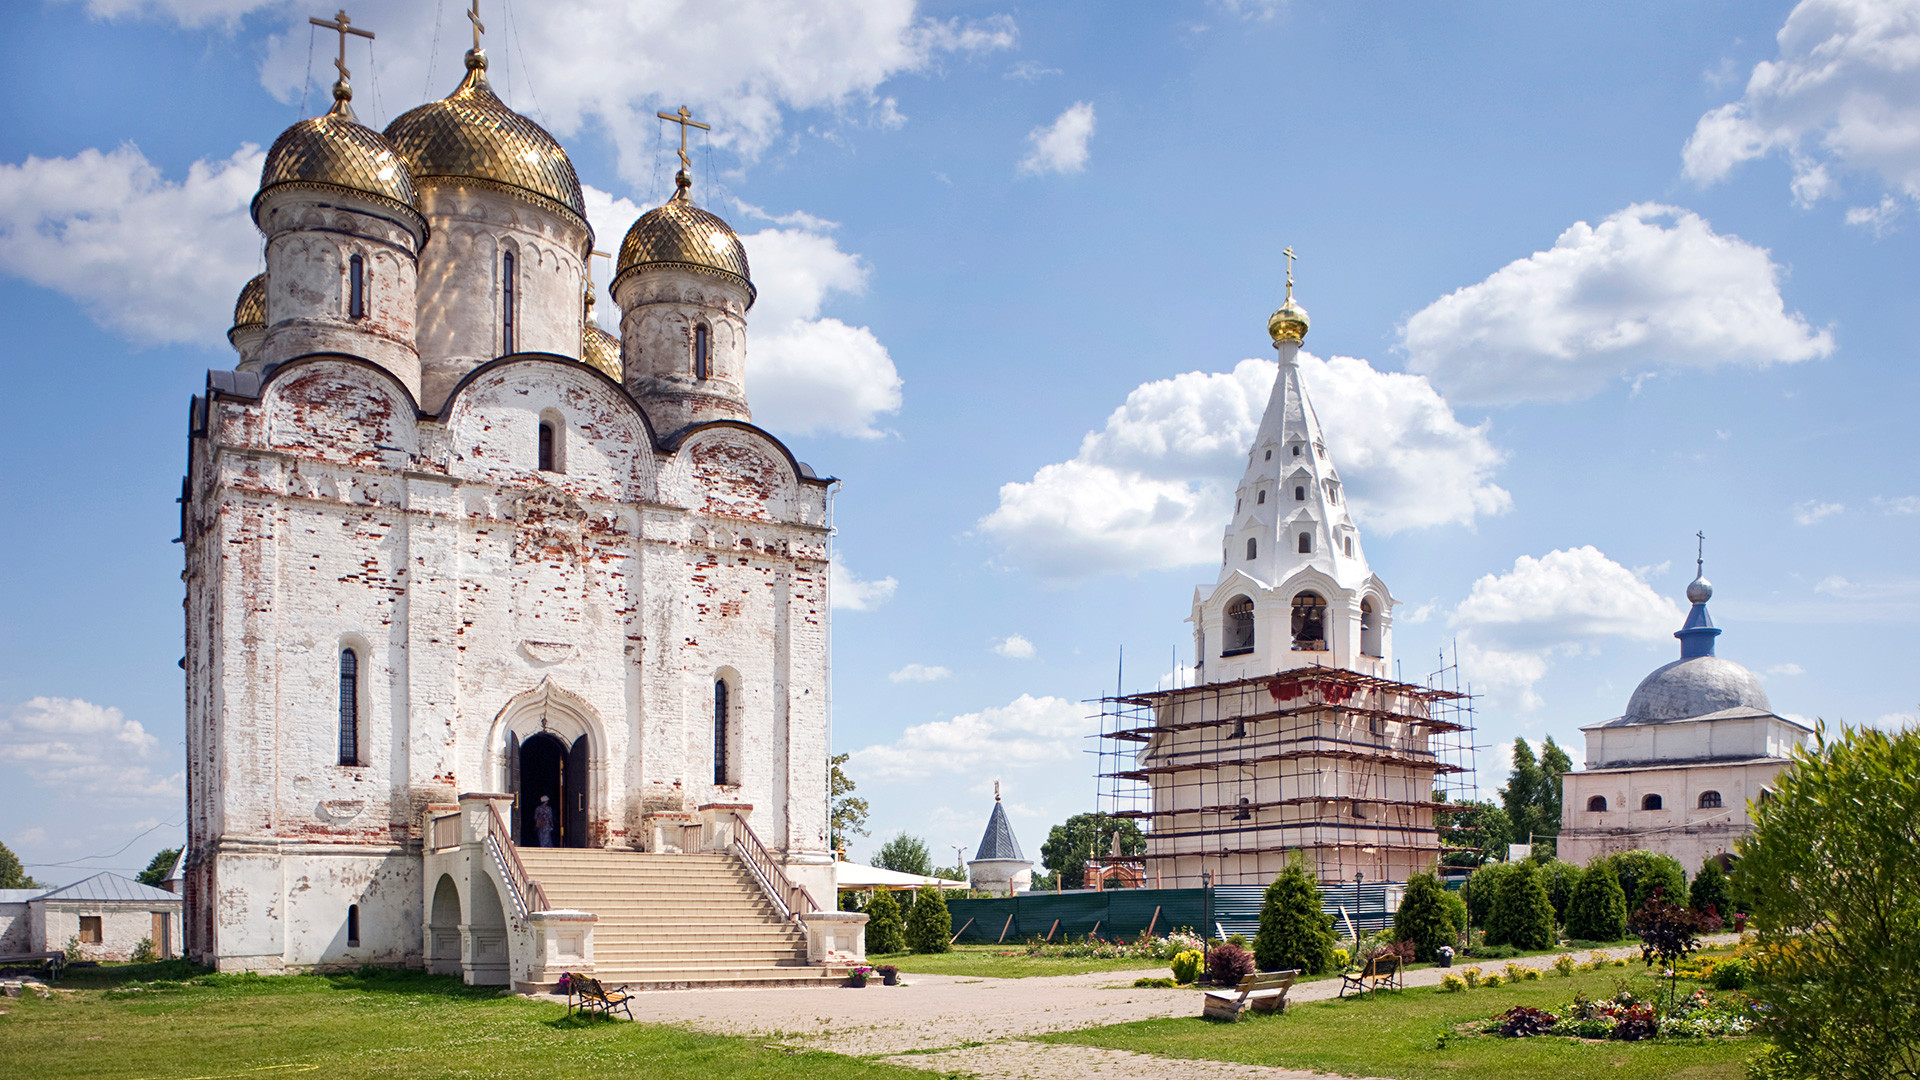 Mozhaisk. Luzhetsky-St. Ferapont-Nativity of the Virgin Monastery, northwest view. From left: Nativity Cathedral, bell tower, Church of Transfiguration over Holy Gates. July 5, 2015.